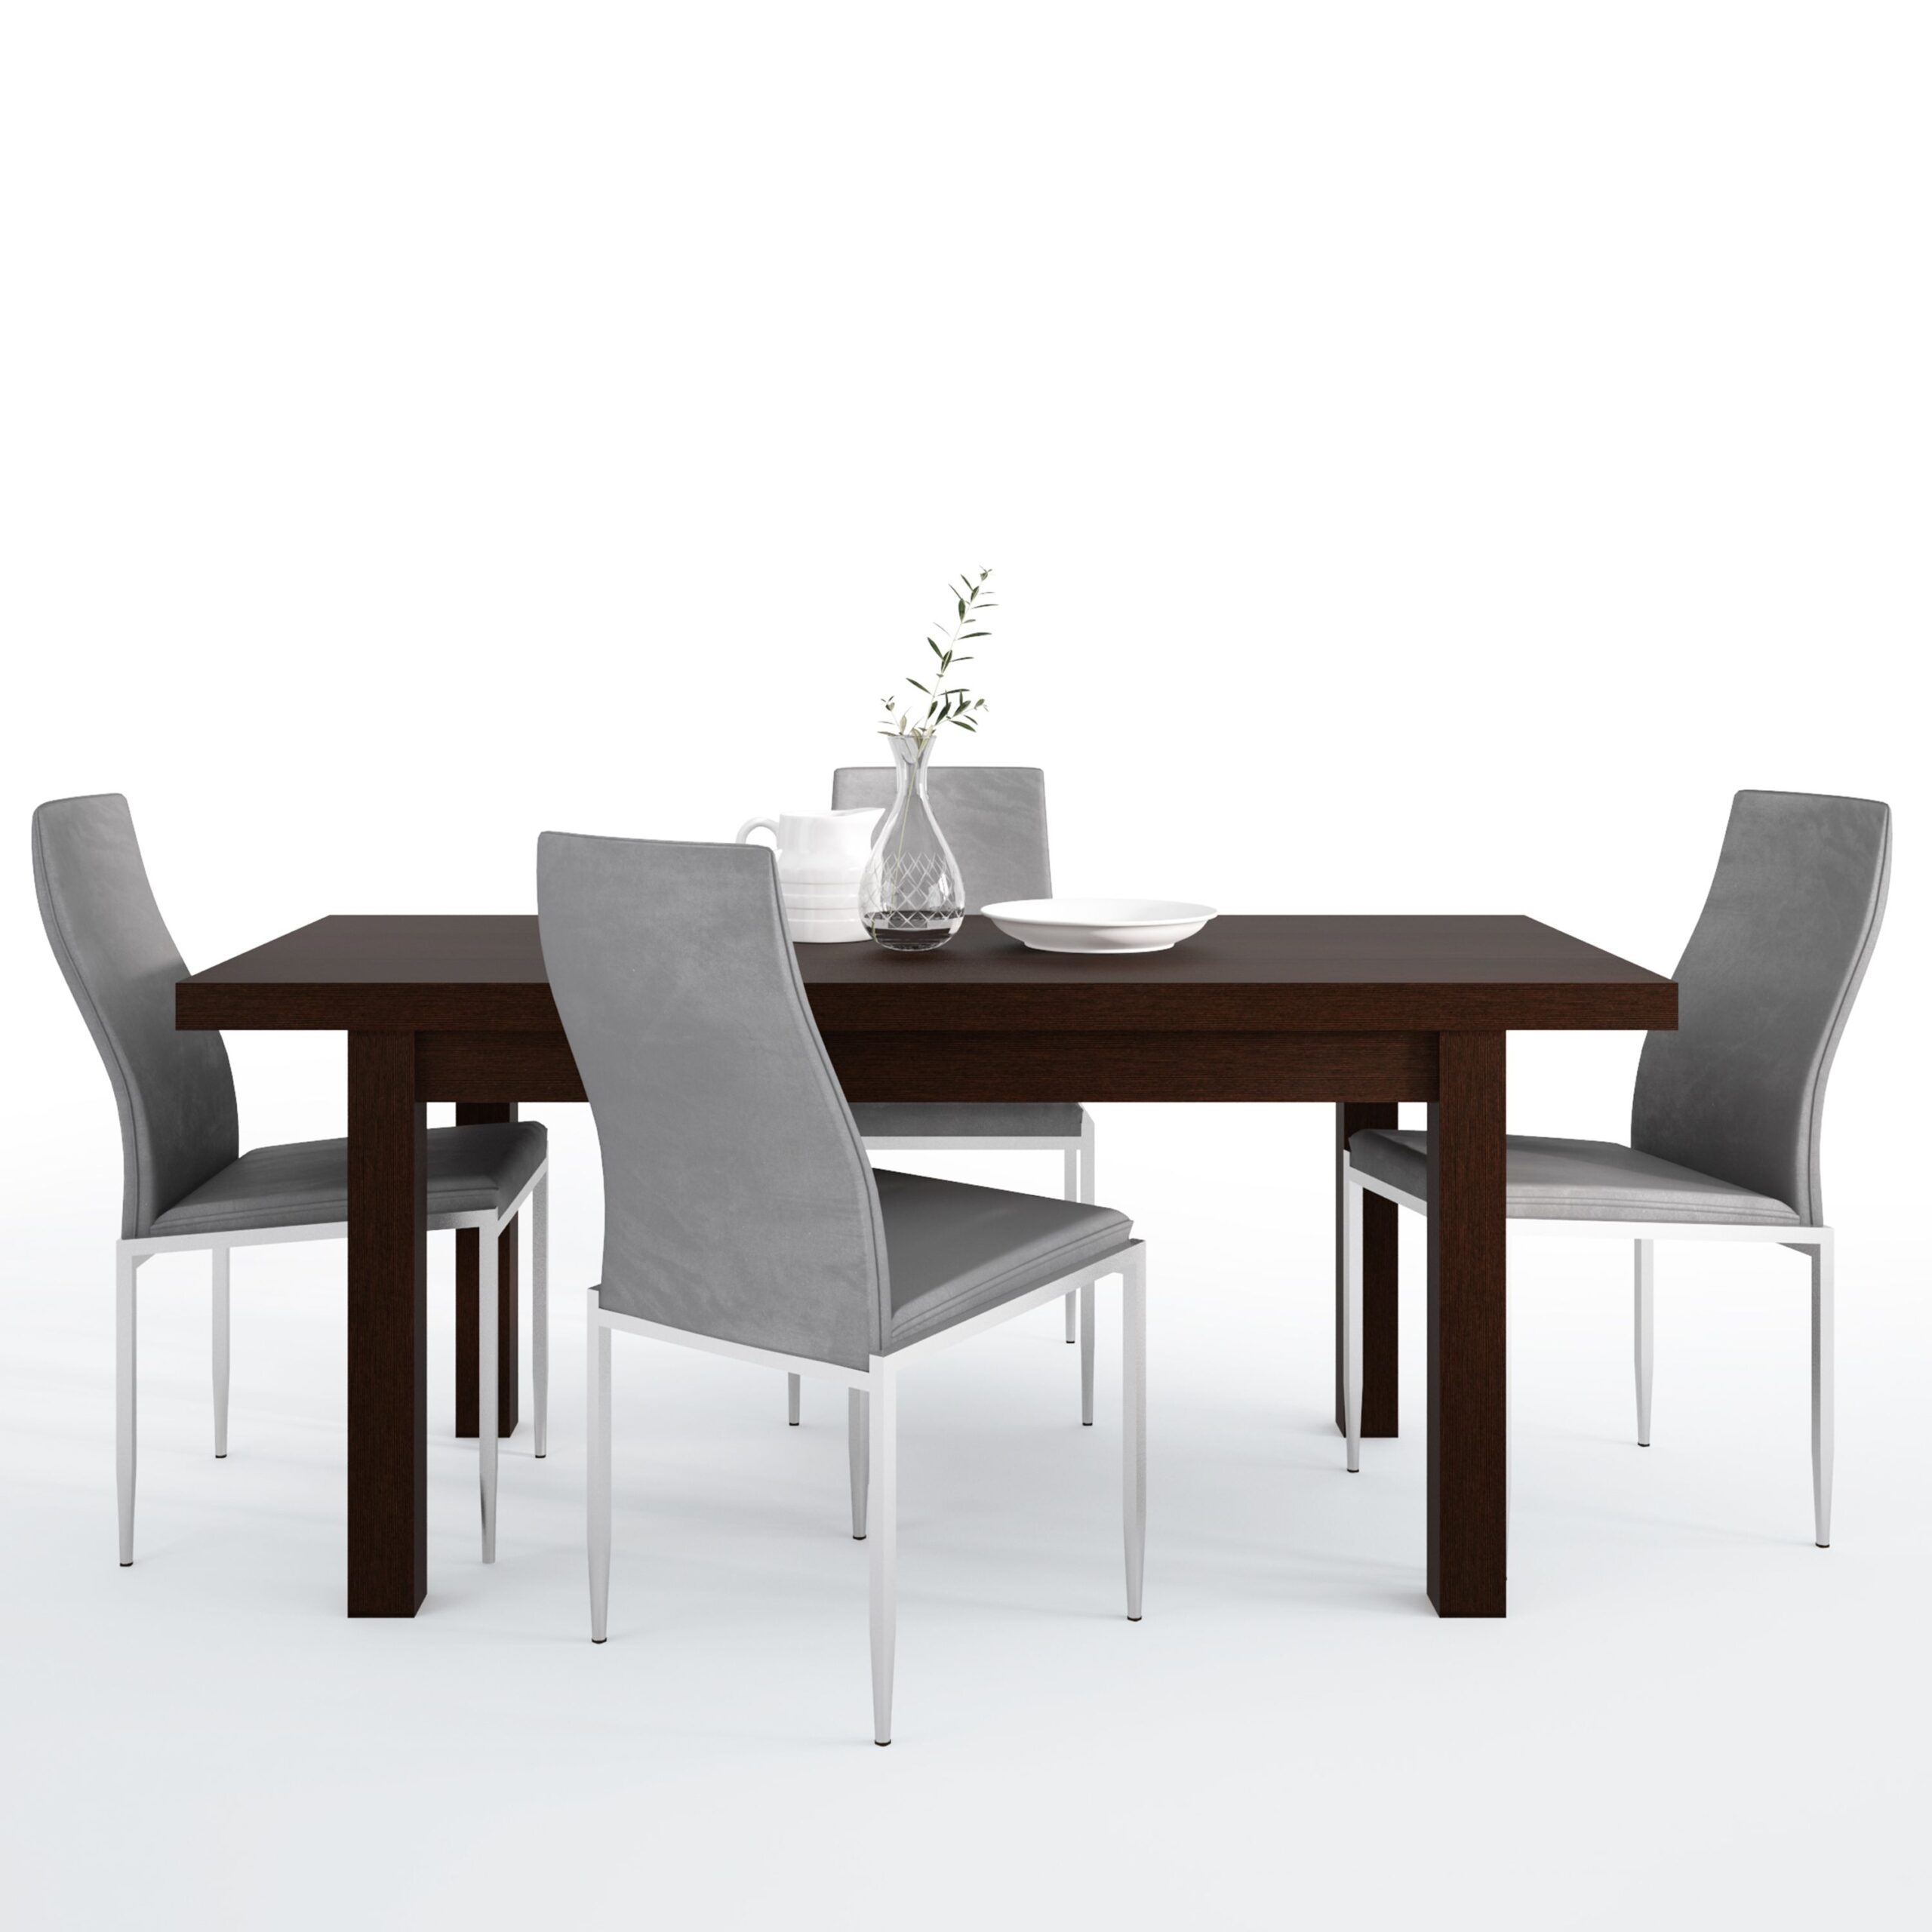 Jello Dining set package Jello Extending Dining Table in Dark Mahogany + 4 Lillie High Back Chair Grey